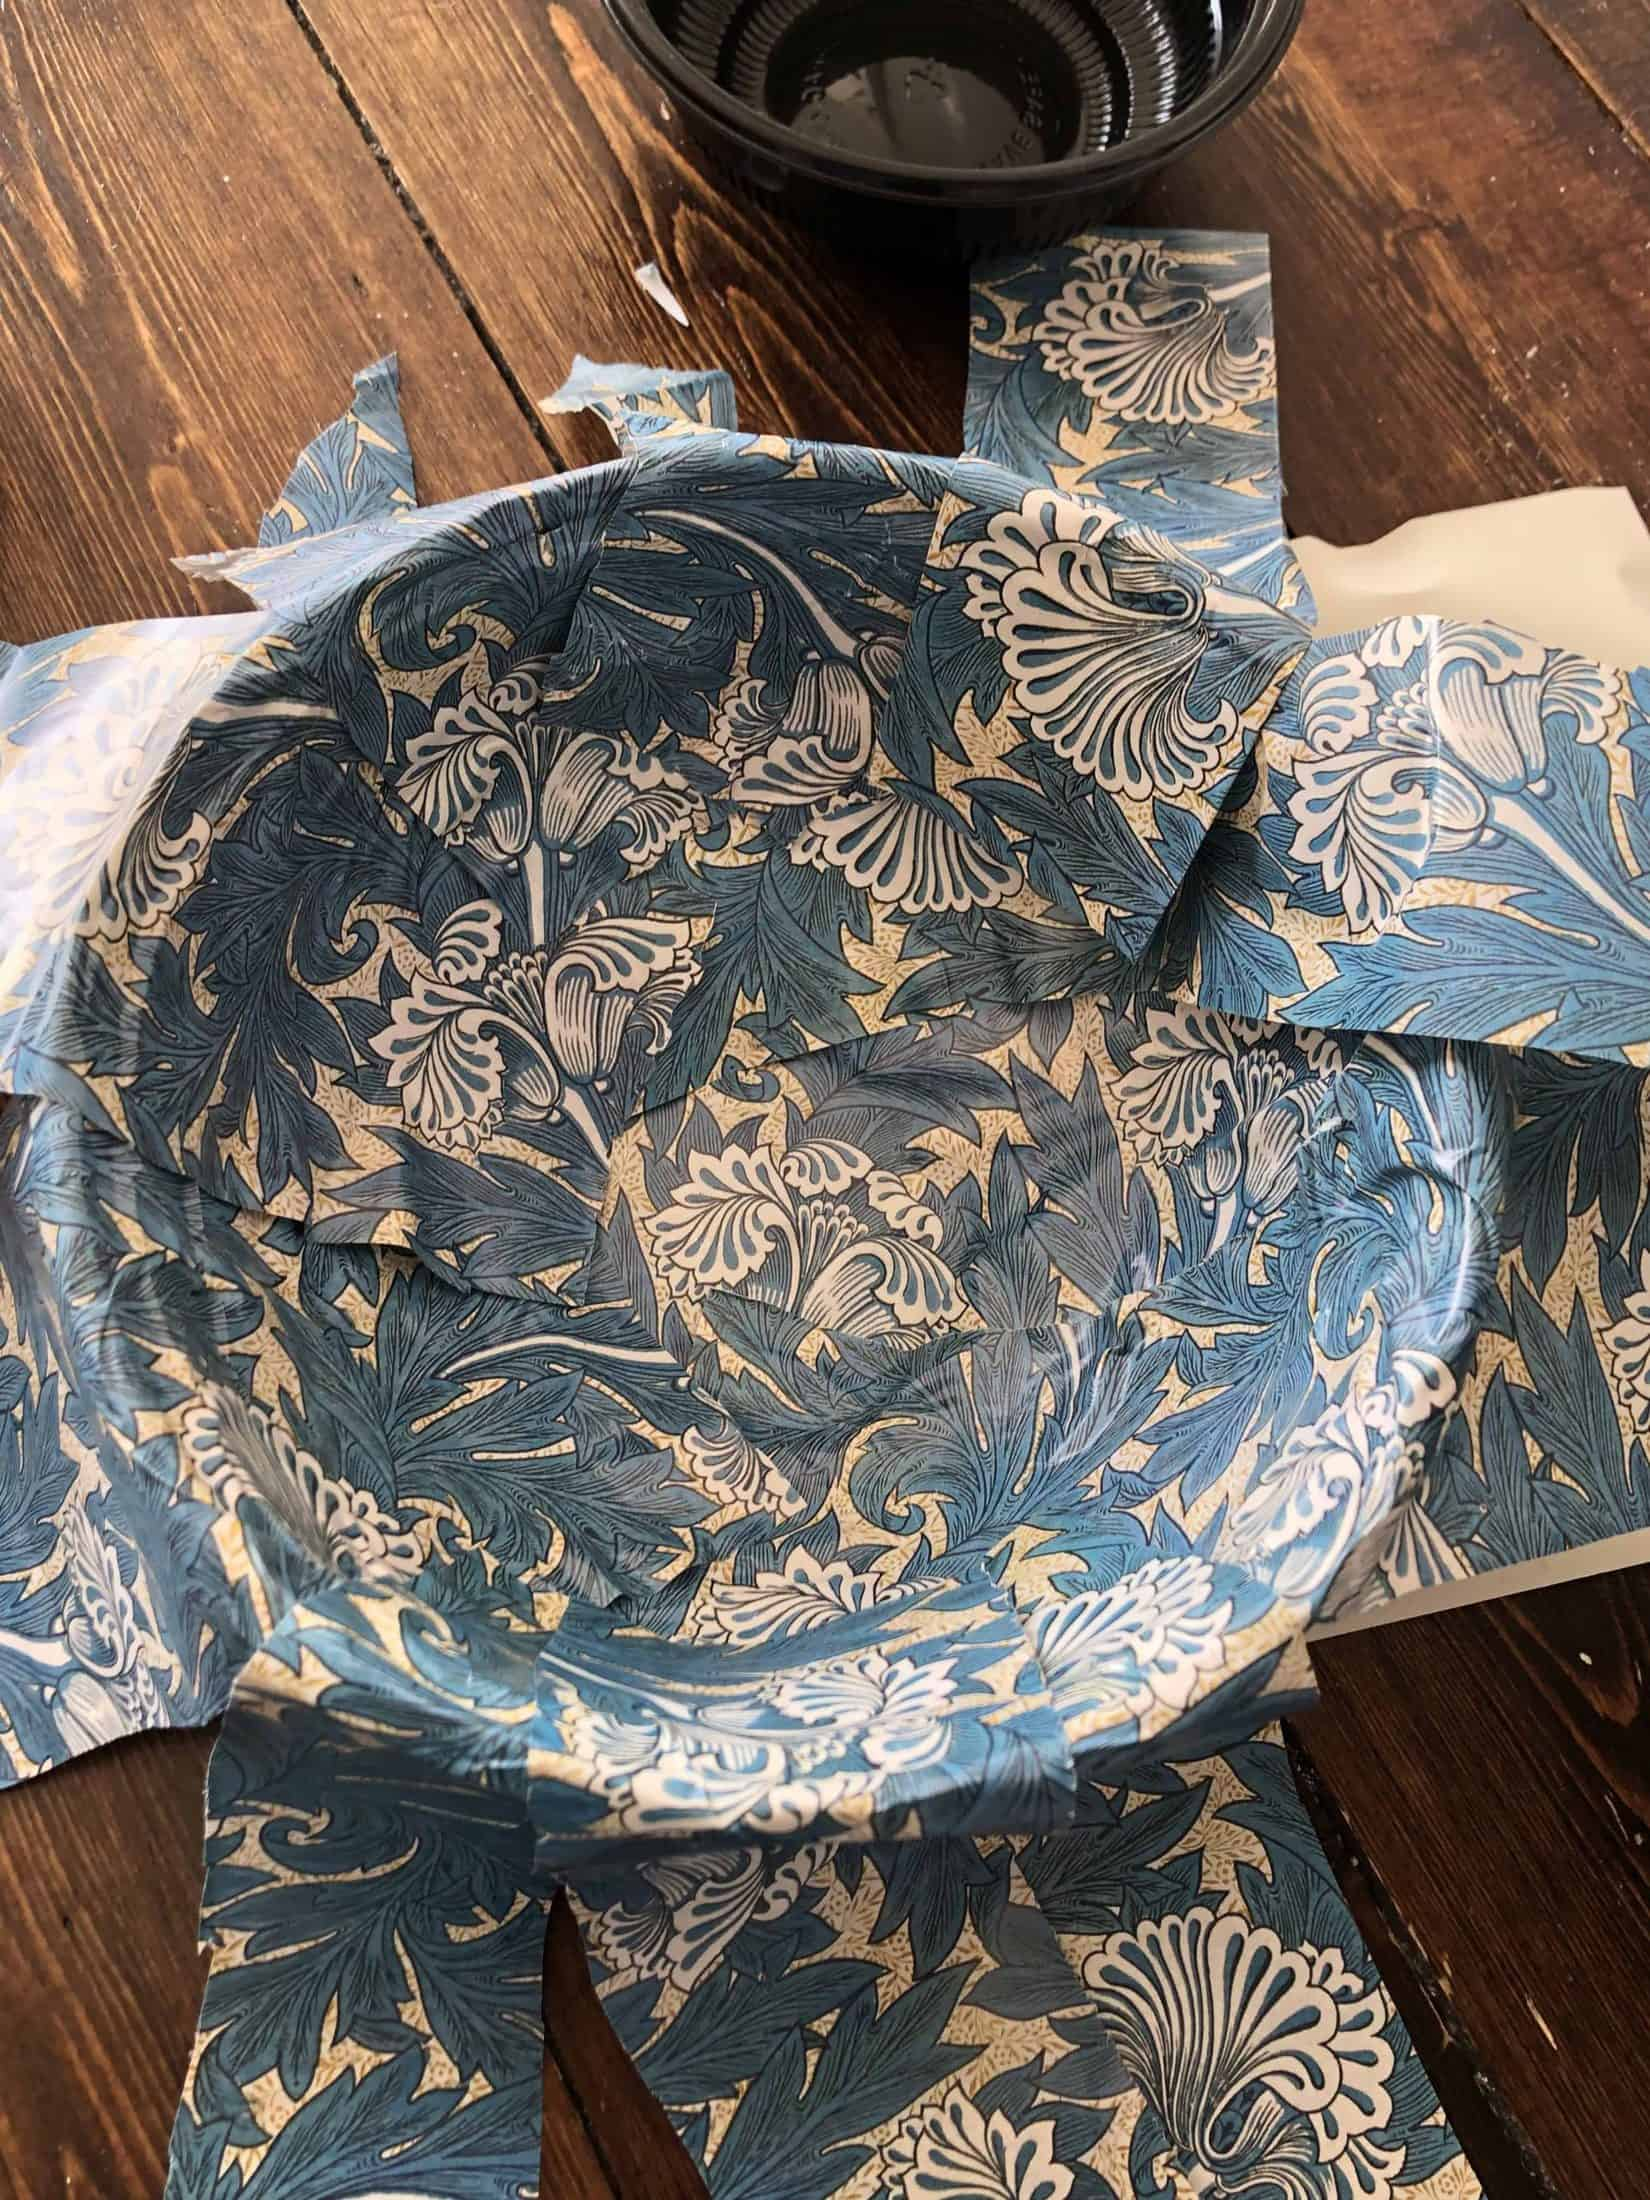 DIY William Morris trinket bowl